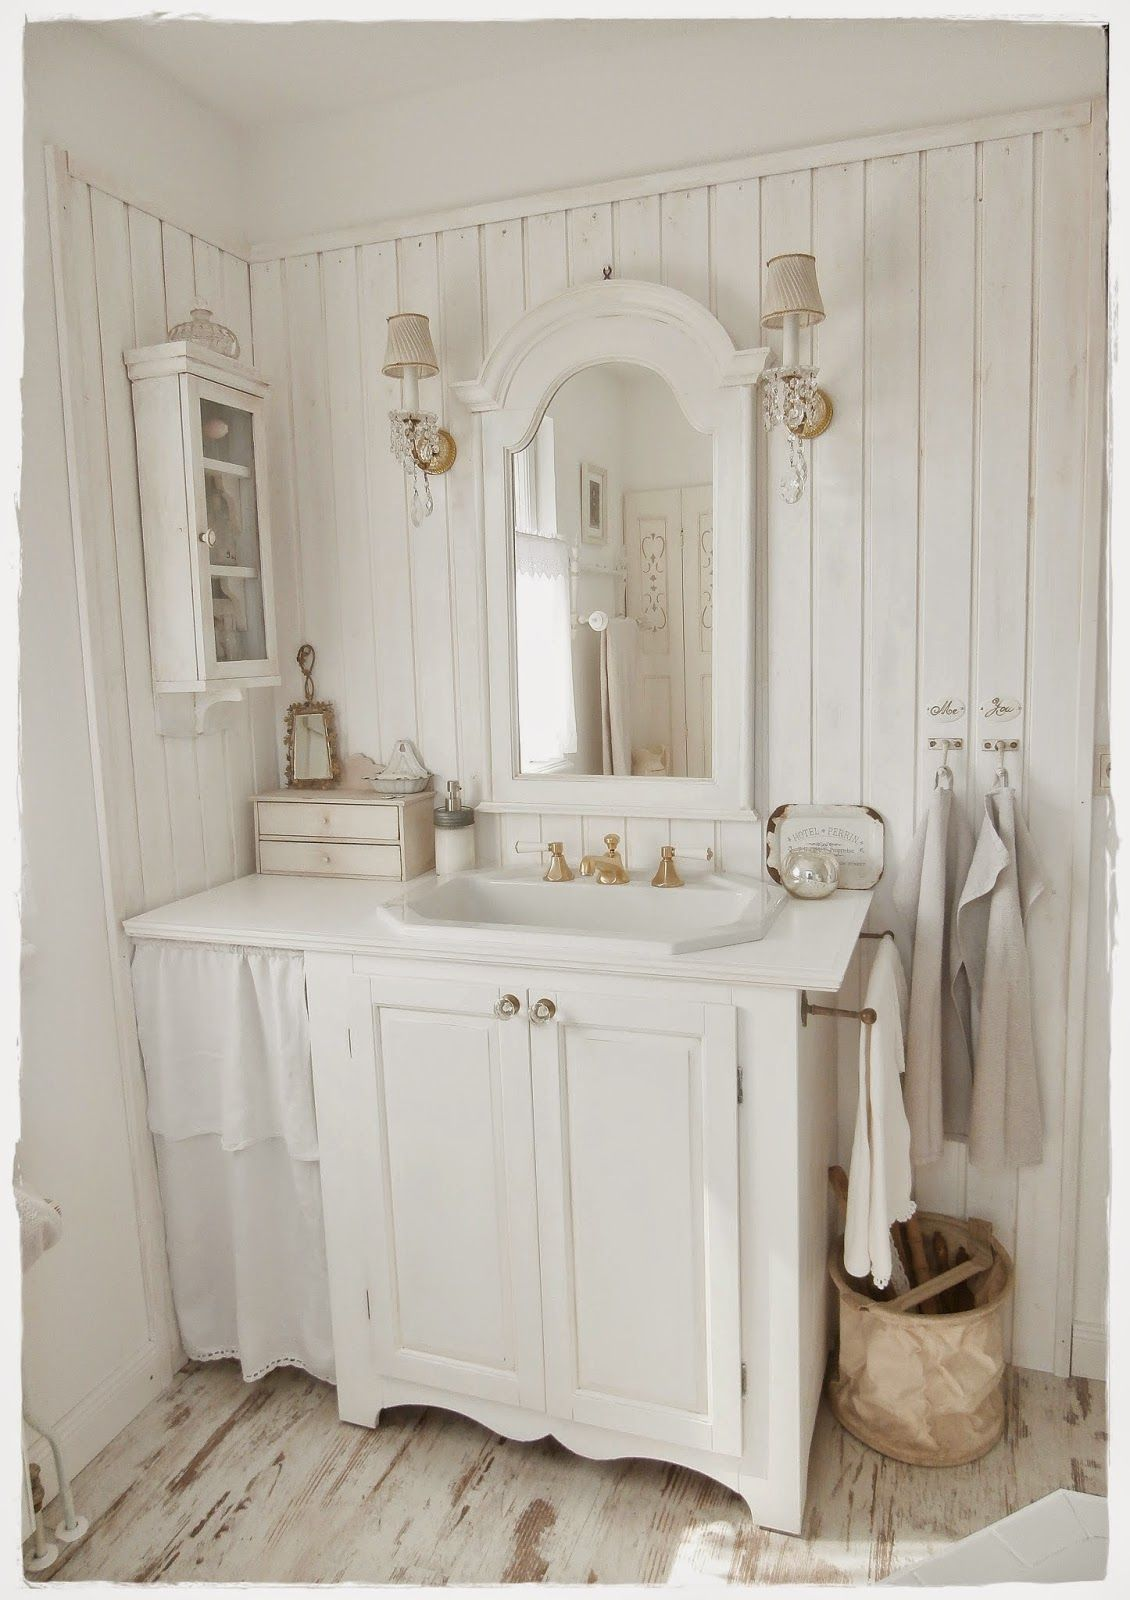 Shabby Chic Badezimmermöbel Master Bathroom Inspiration - And Surprise Giveaway